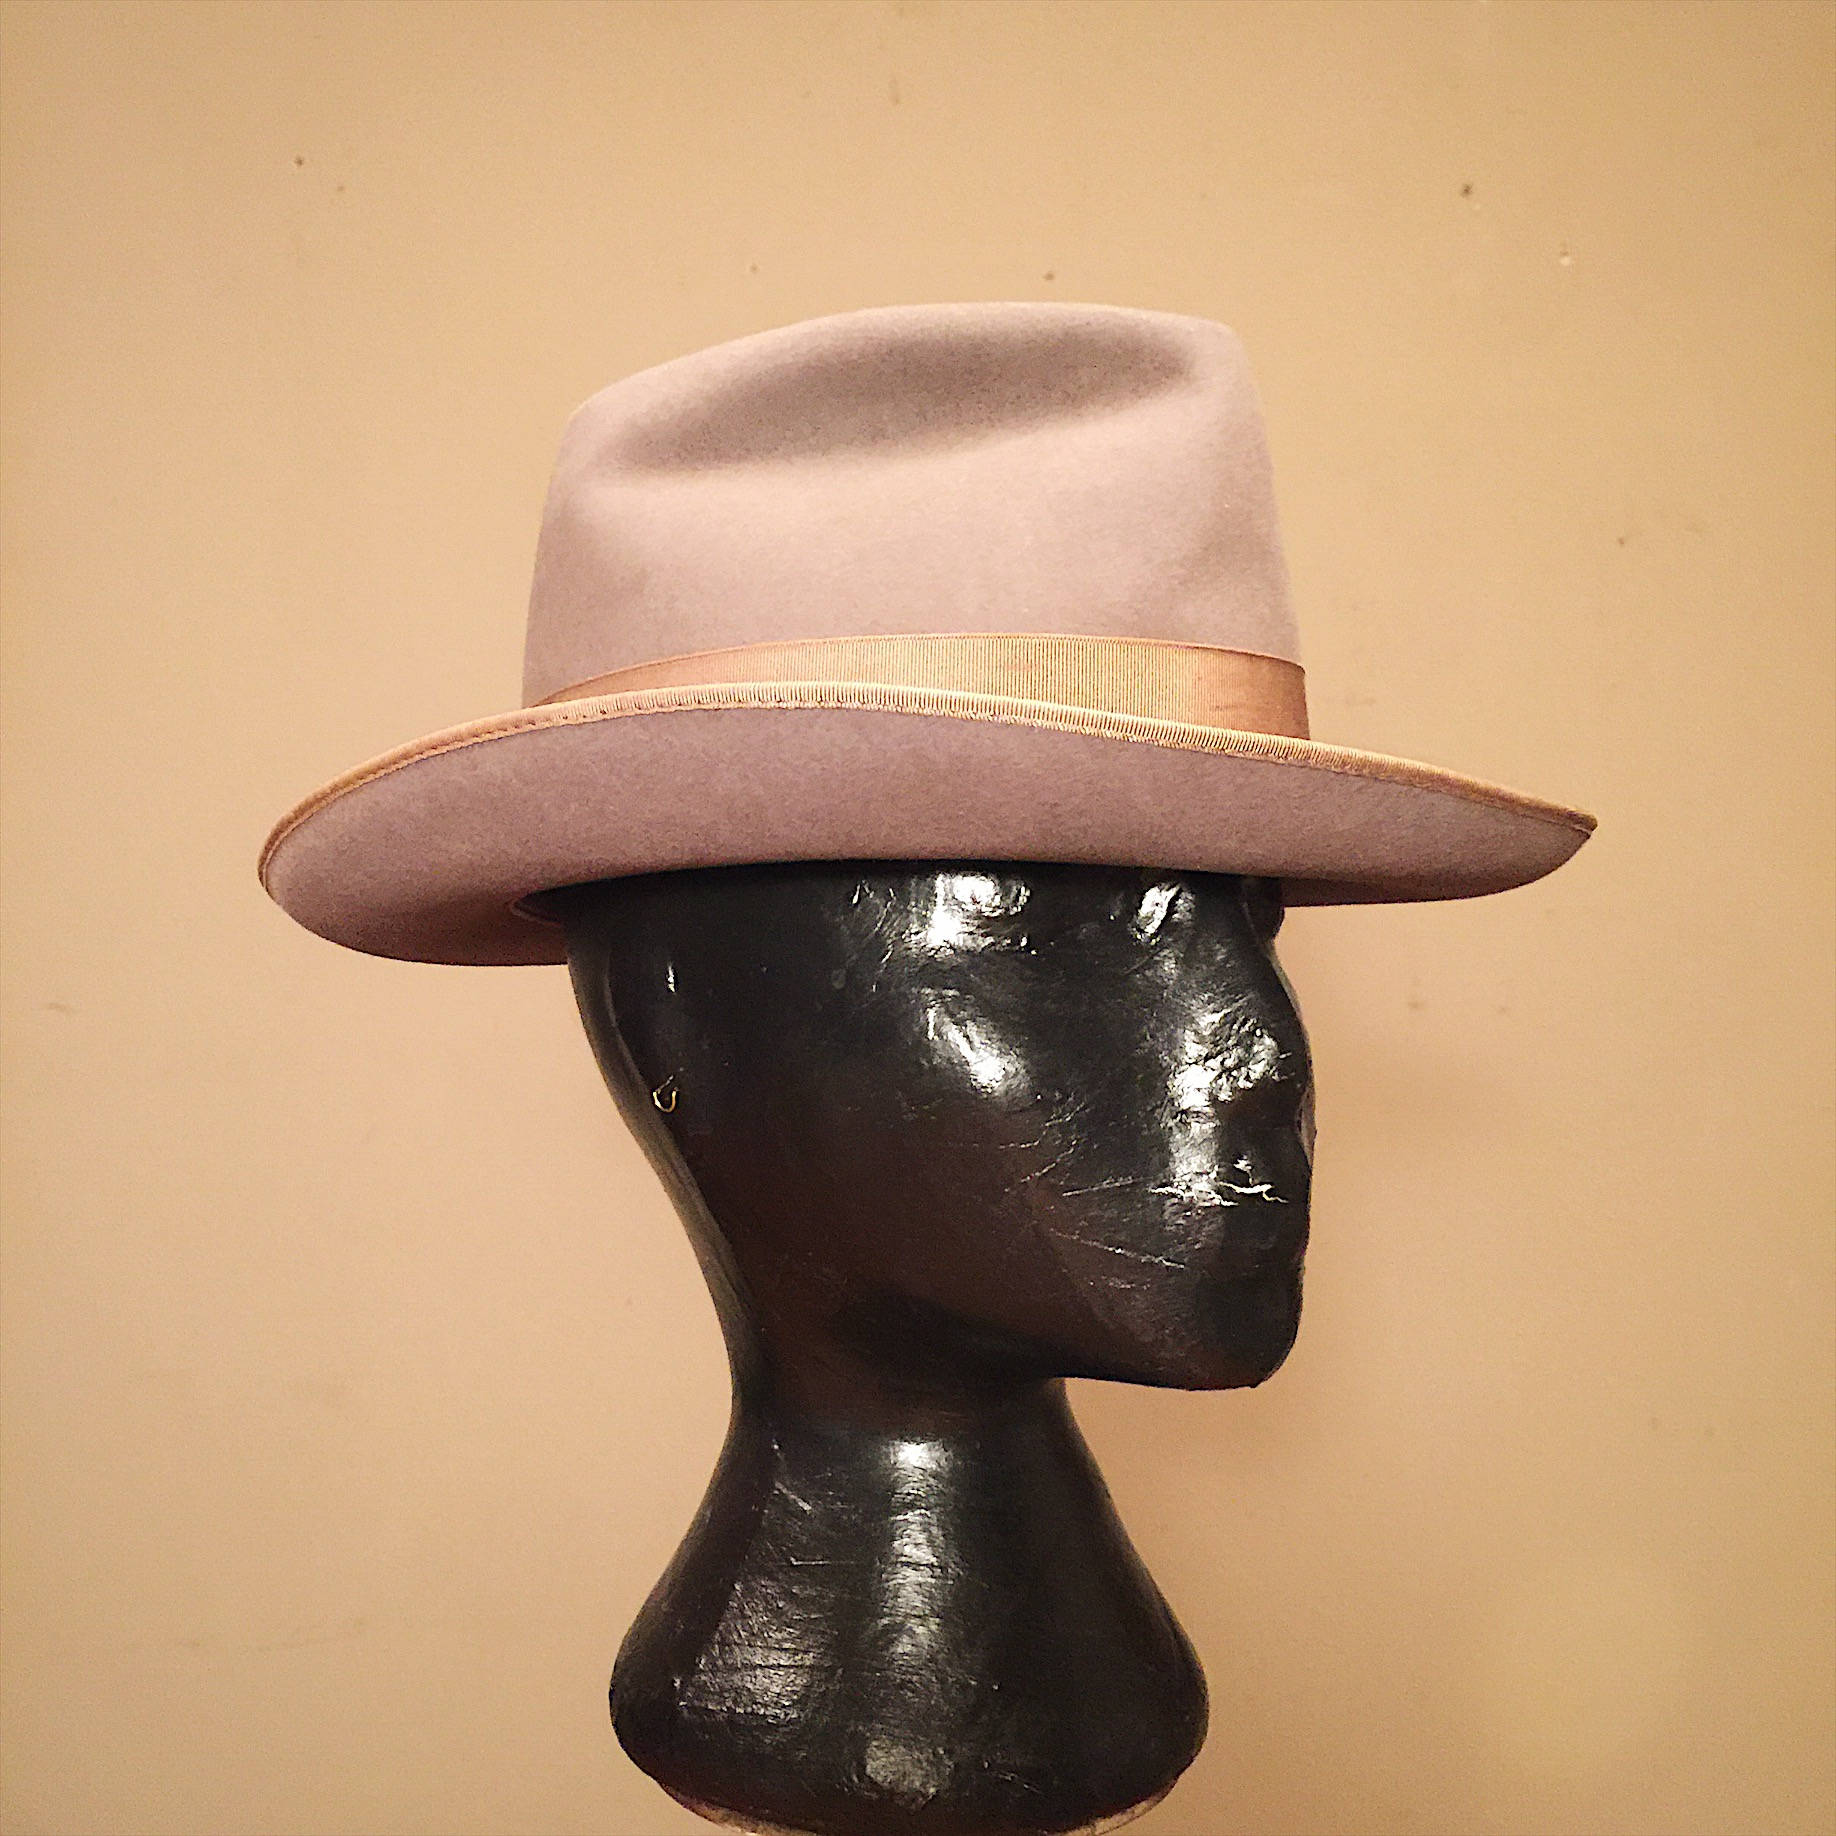 Scott Ltd Fedora Hat - New York Fedora - 1950s? - 7 1/8? -  Custom Fedora - Vintage Felt Fedora Hat - Gangster Hat - Godfather